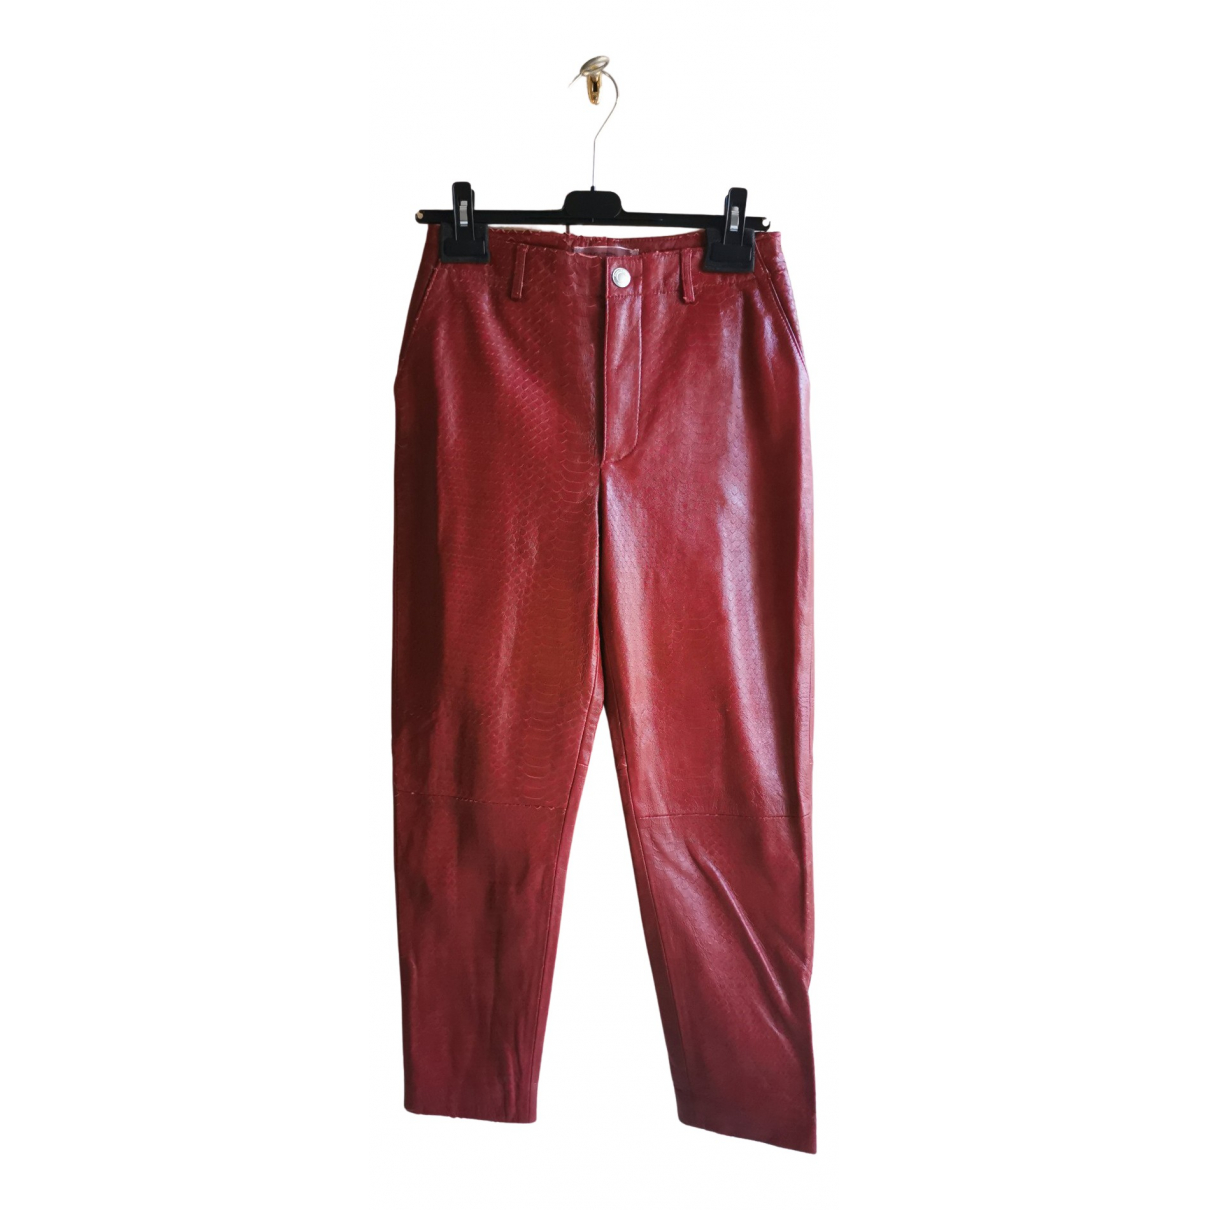 Giambattista Valli X H&m N Red Leather Trousers for Men 36 FR